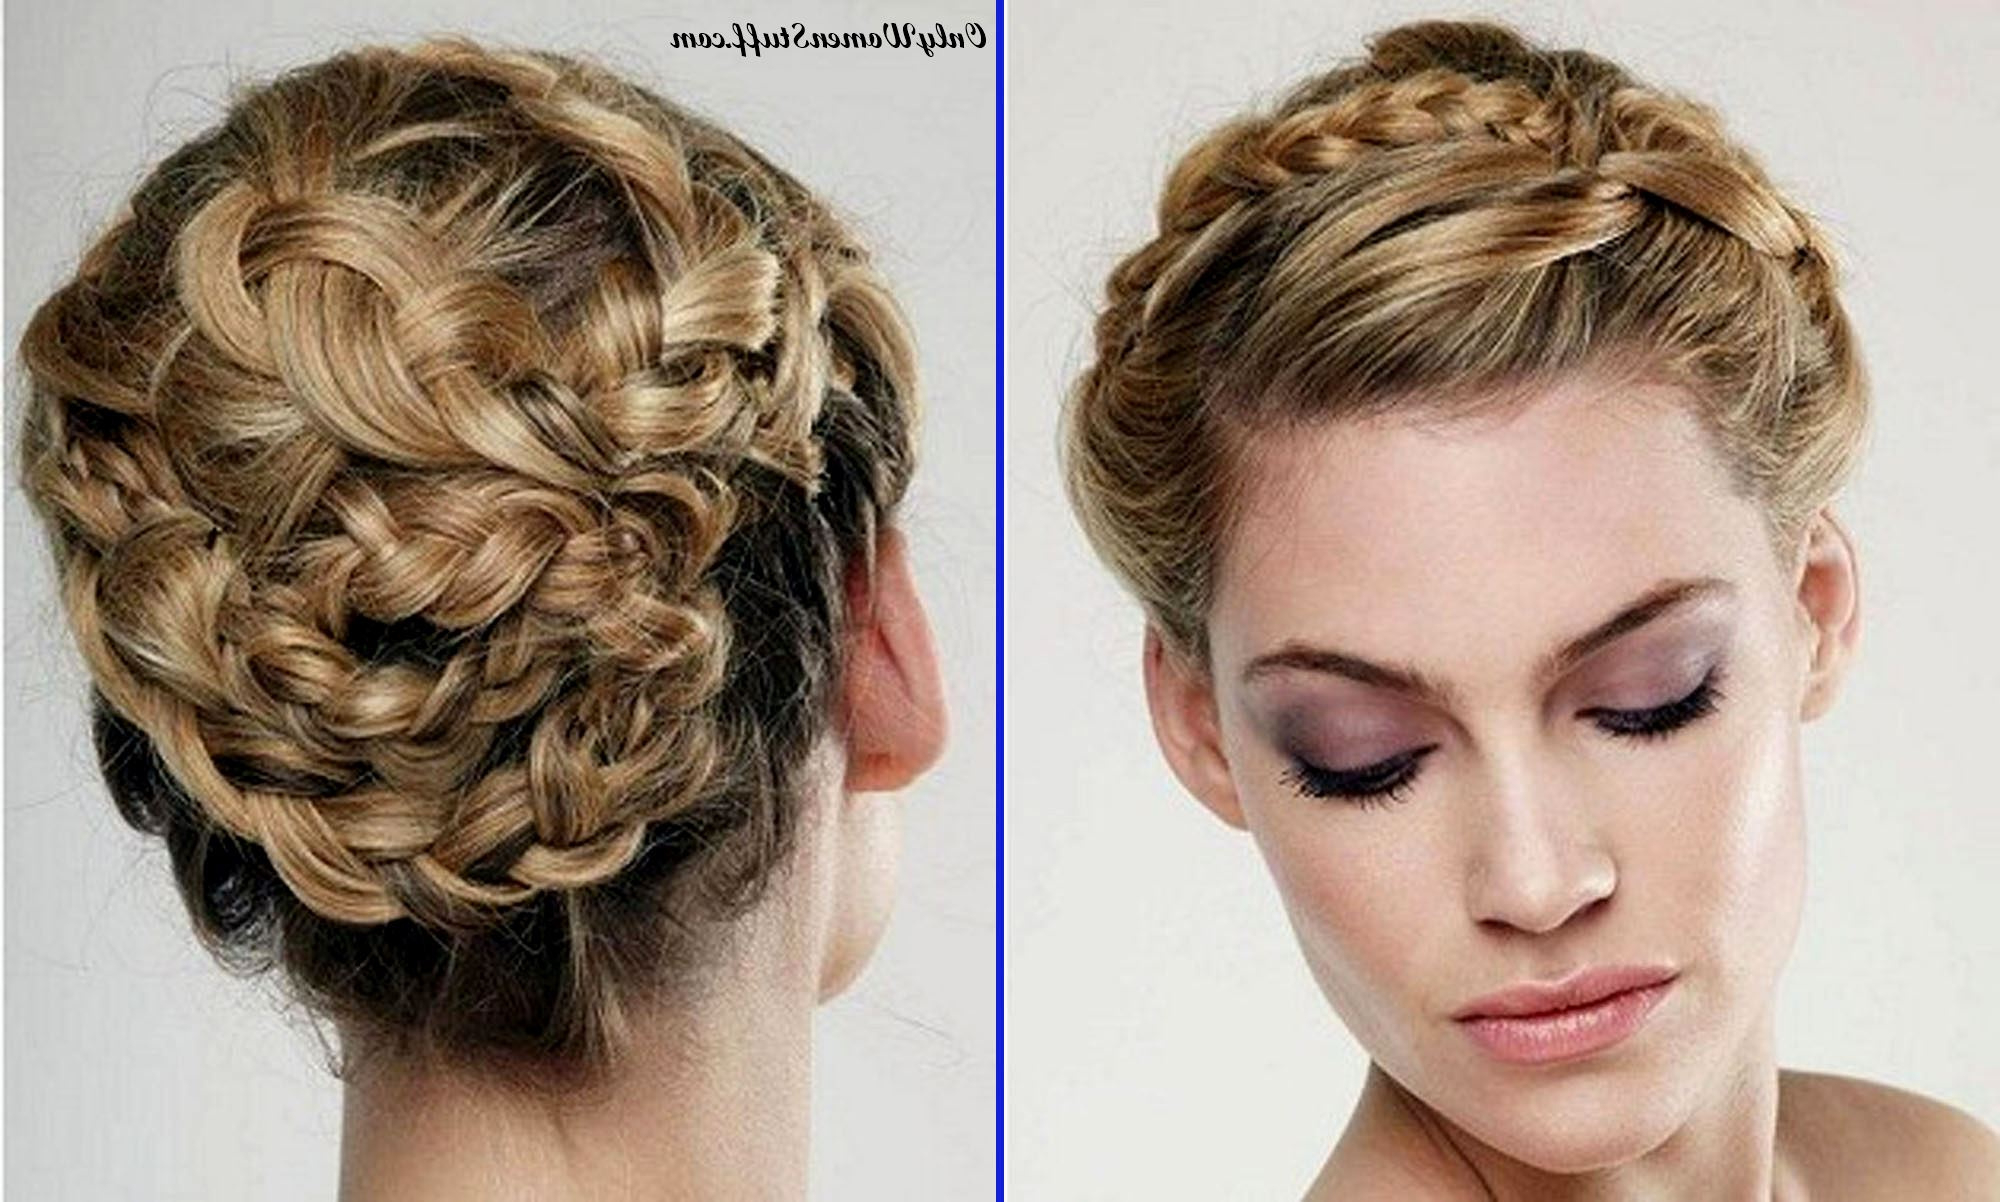 Favorite Fancy Knot Prom Hairstyles With Fashion : Most Amazing Cute Short Hair Updo Collection 50 Easy Prom (View 10 of 20)